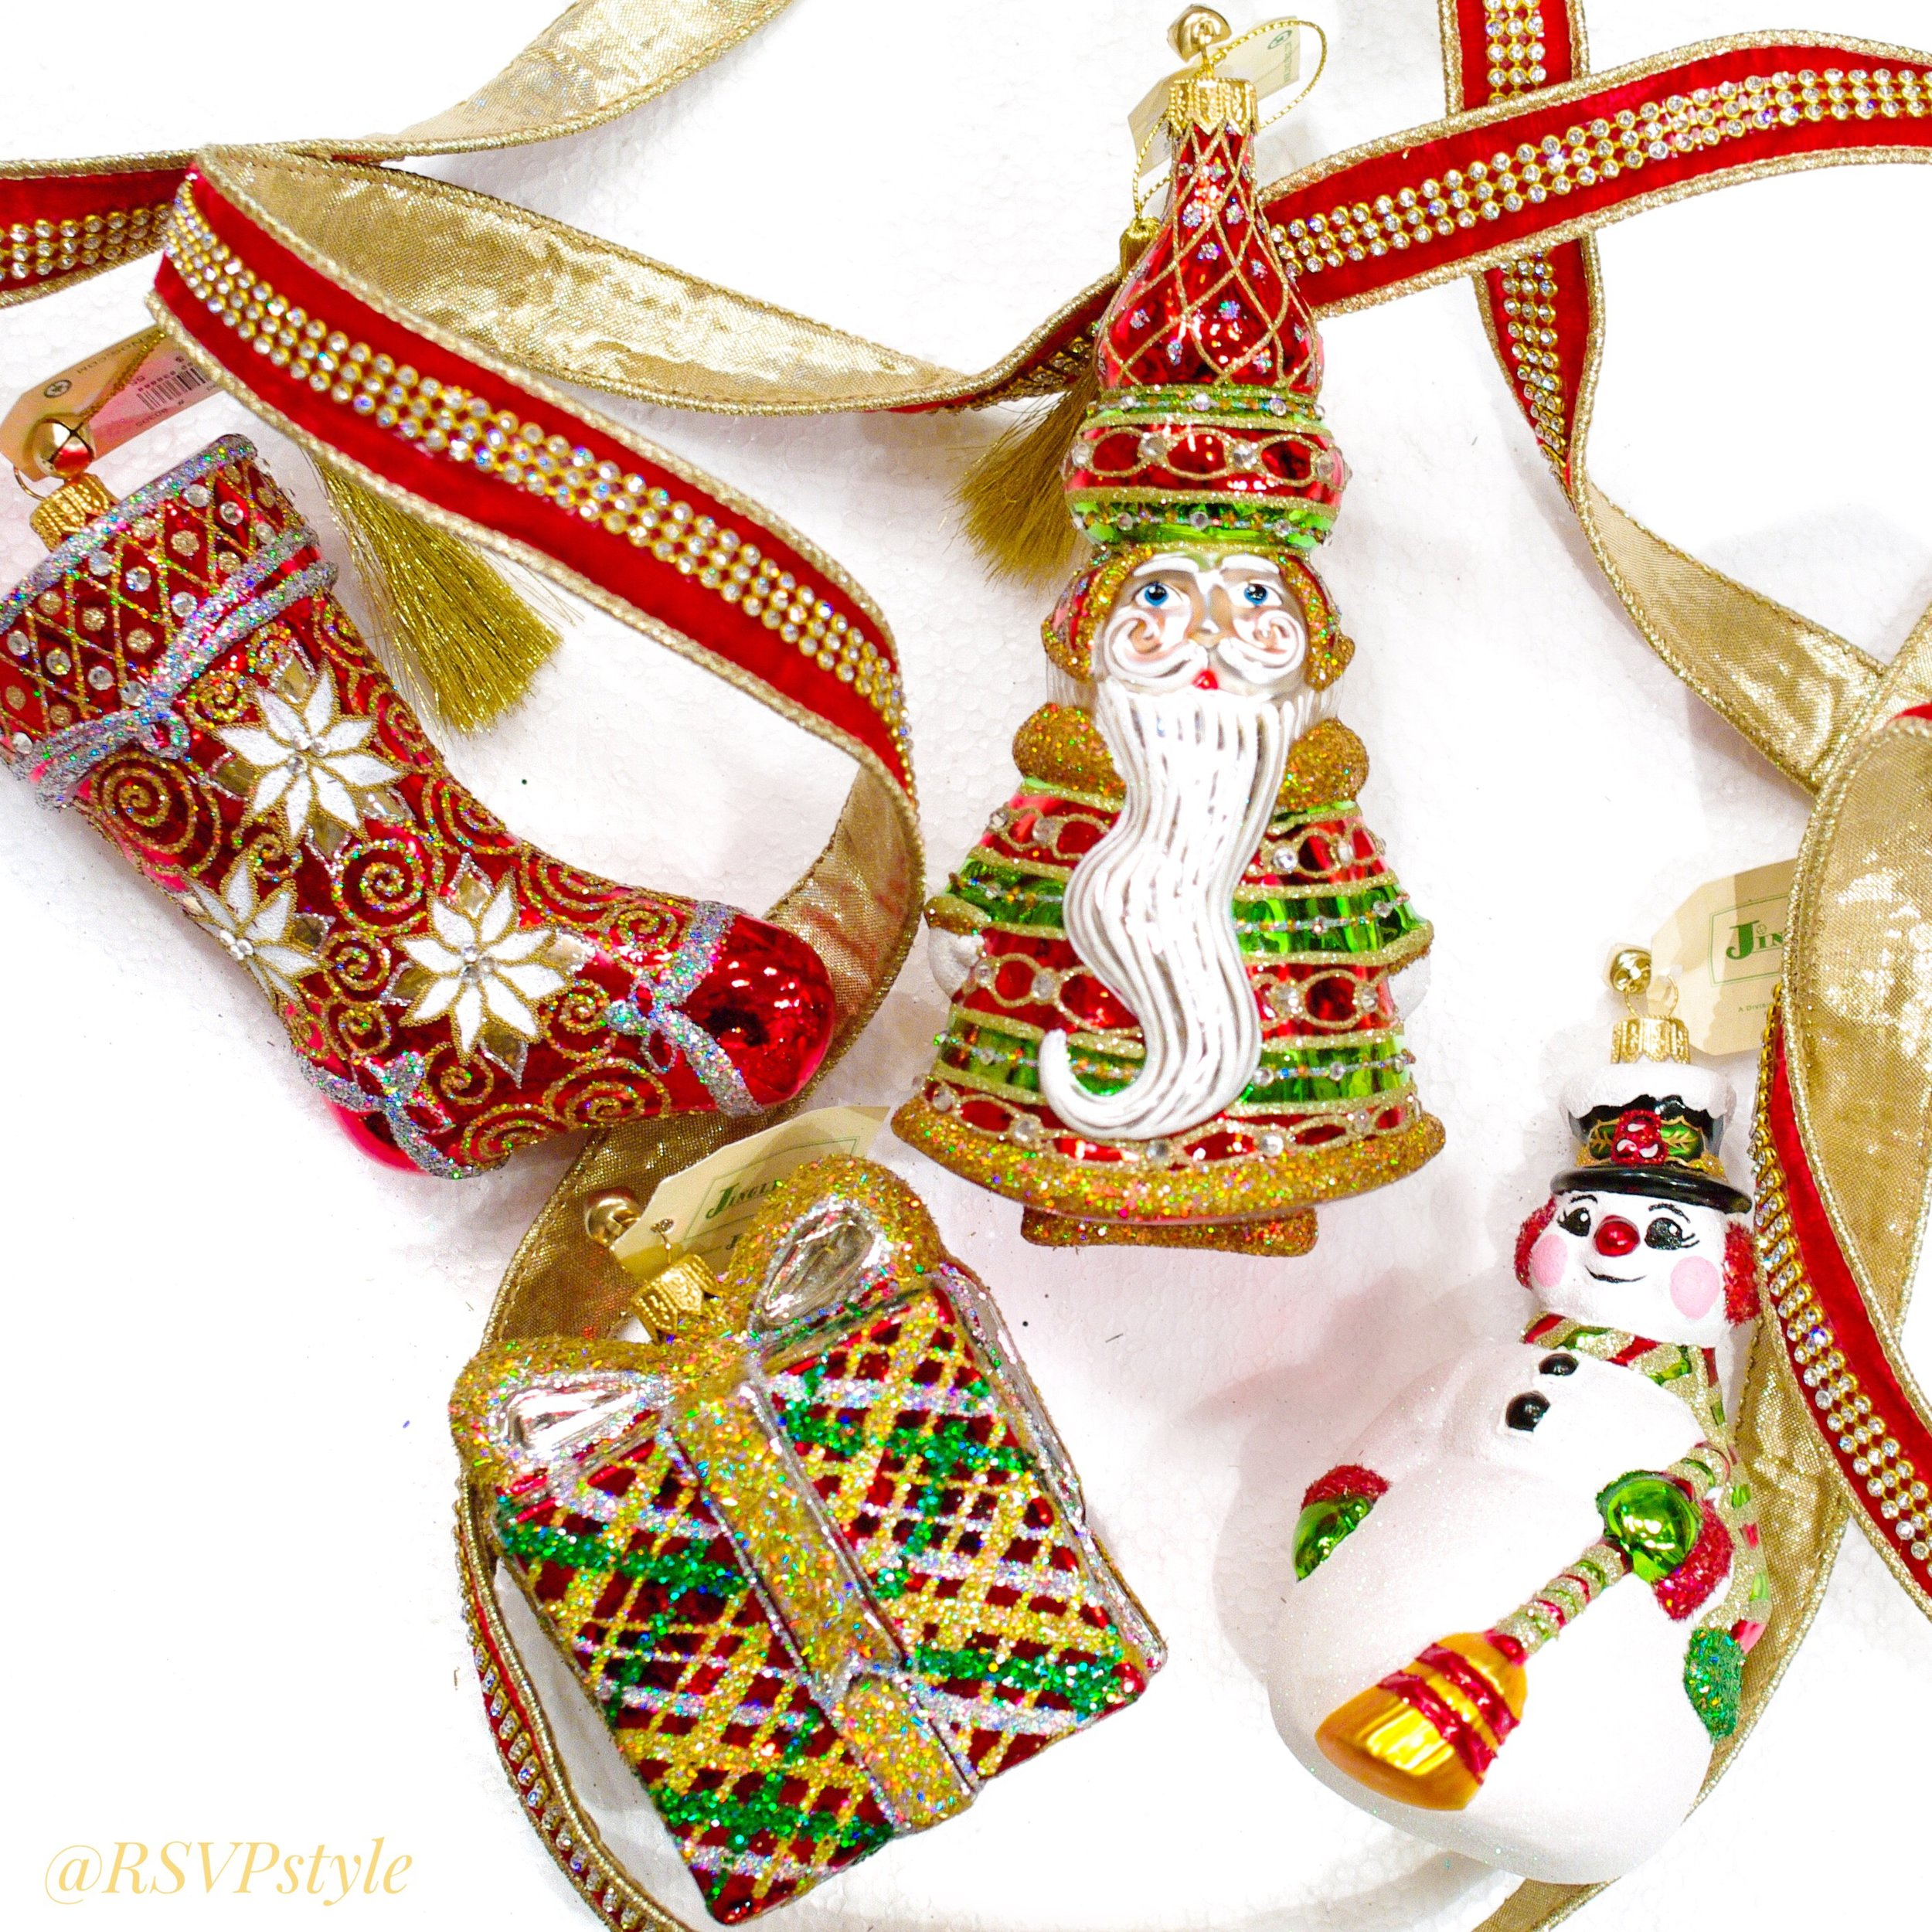 Exclusive Limited Edition Ornament Collections